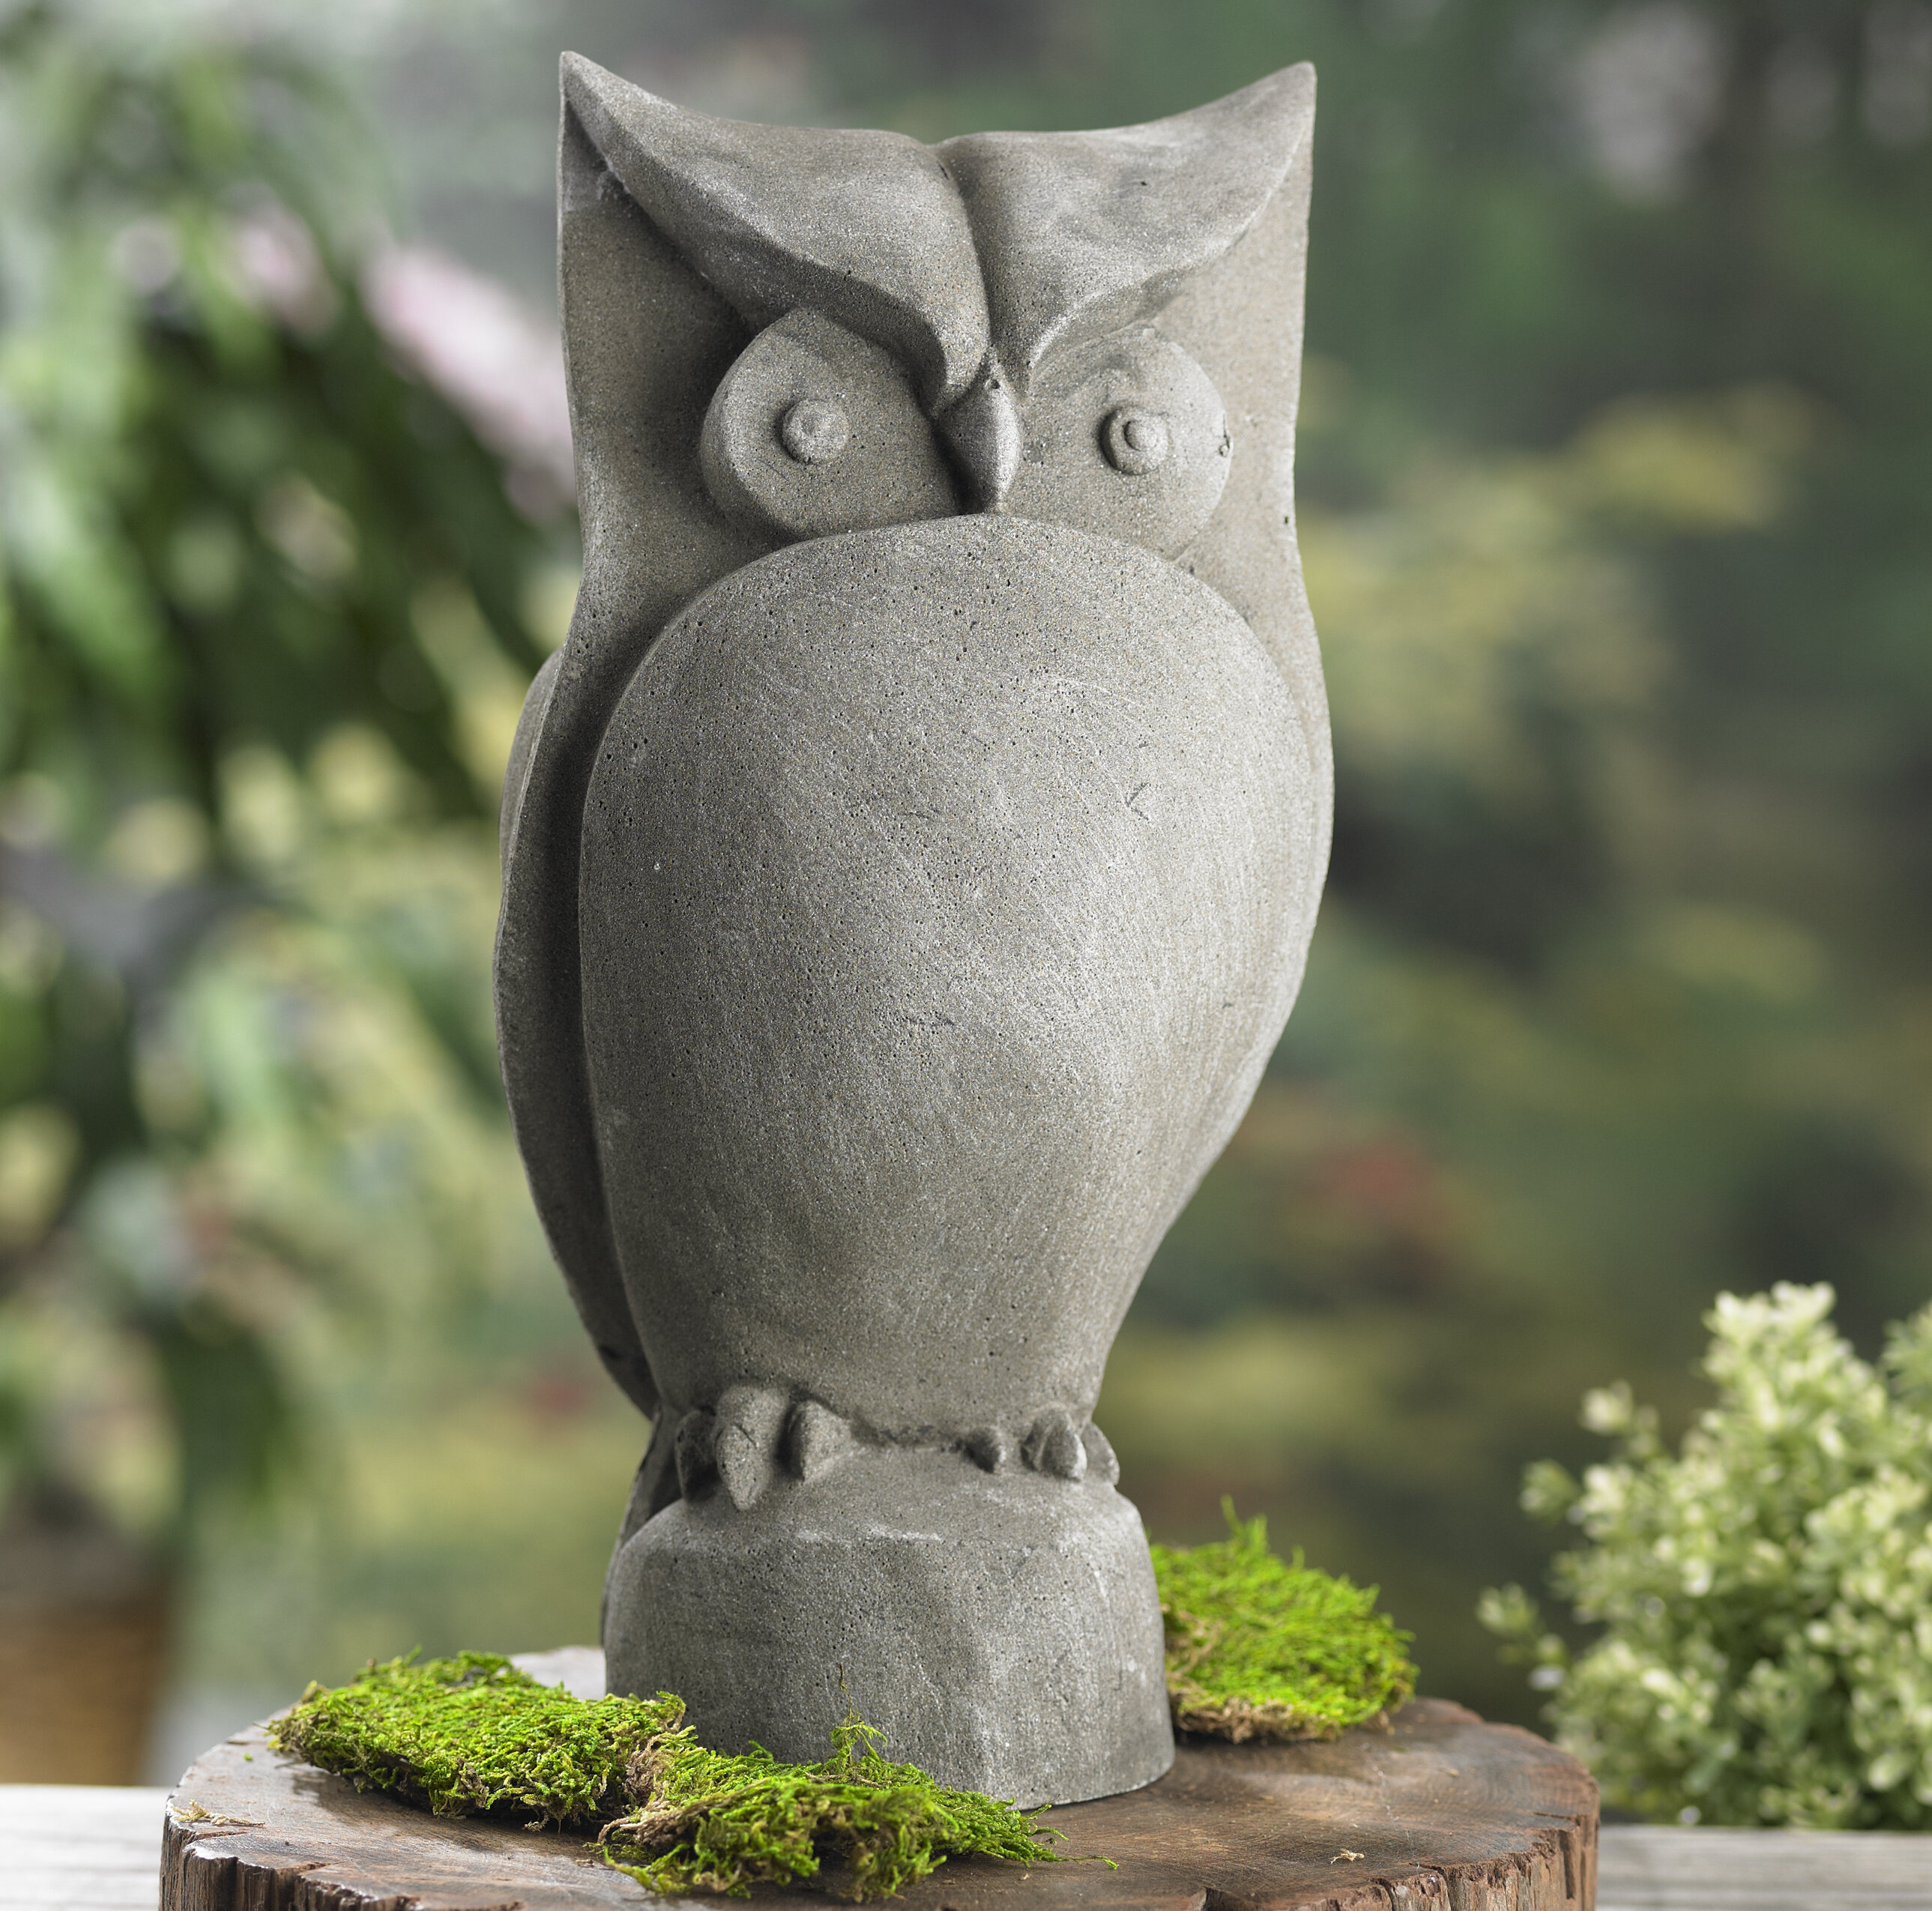 Owl Garden Statue Metal Bird Sculpture Tree Outdoor